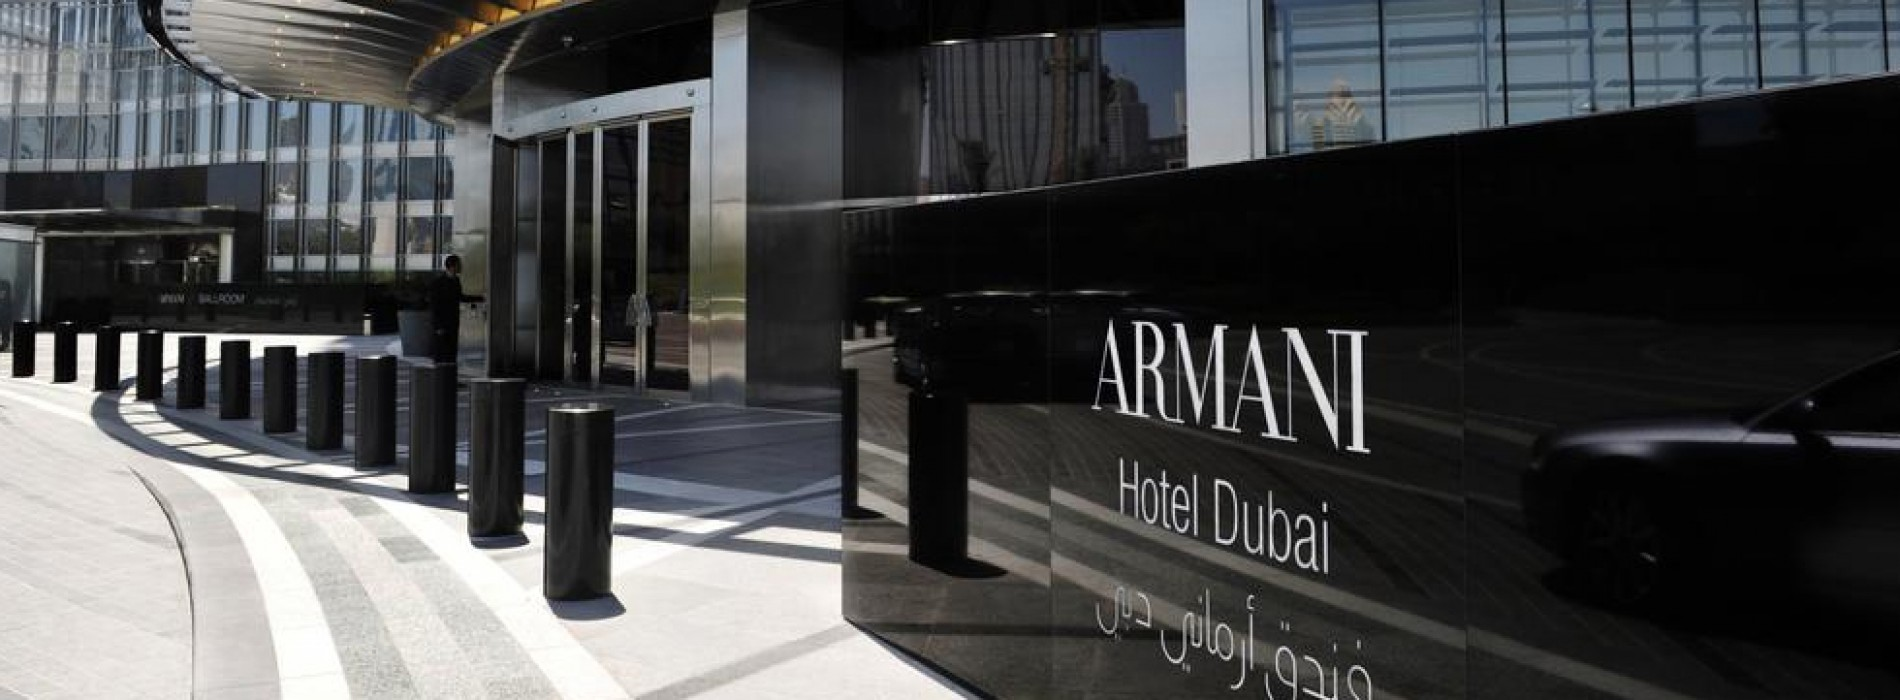 Leading Chinese travel site Ctrip awards 'Chinese Preferred Hotel' certification to Armani Hotel Dubai